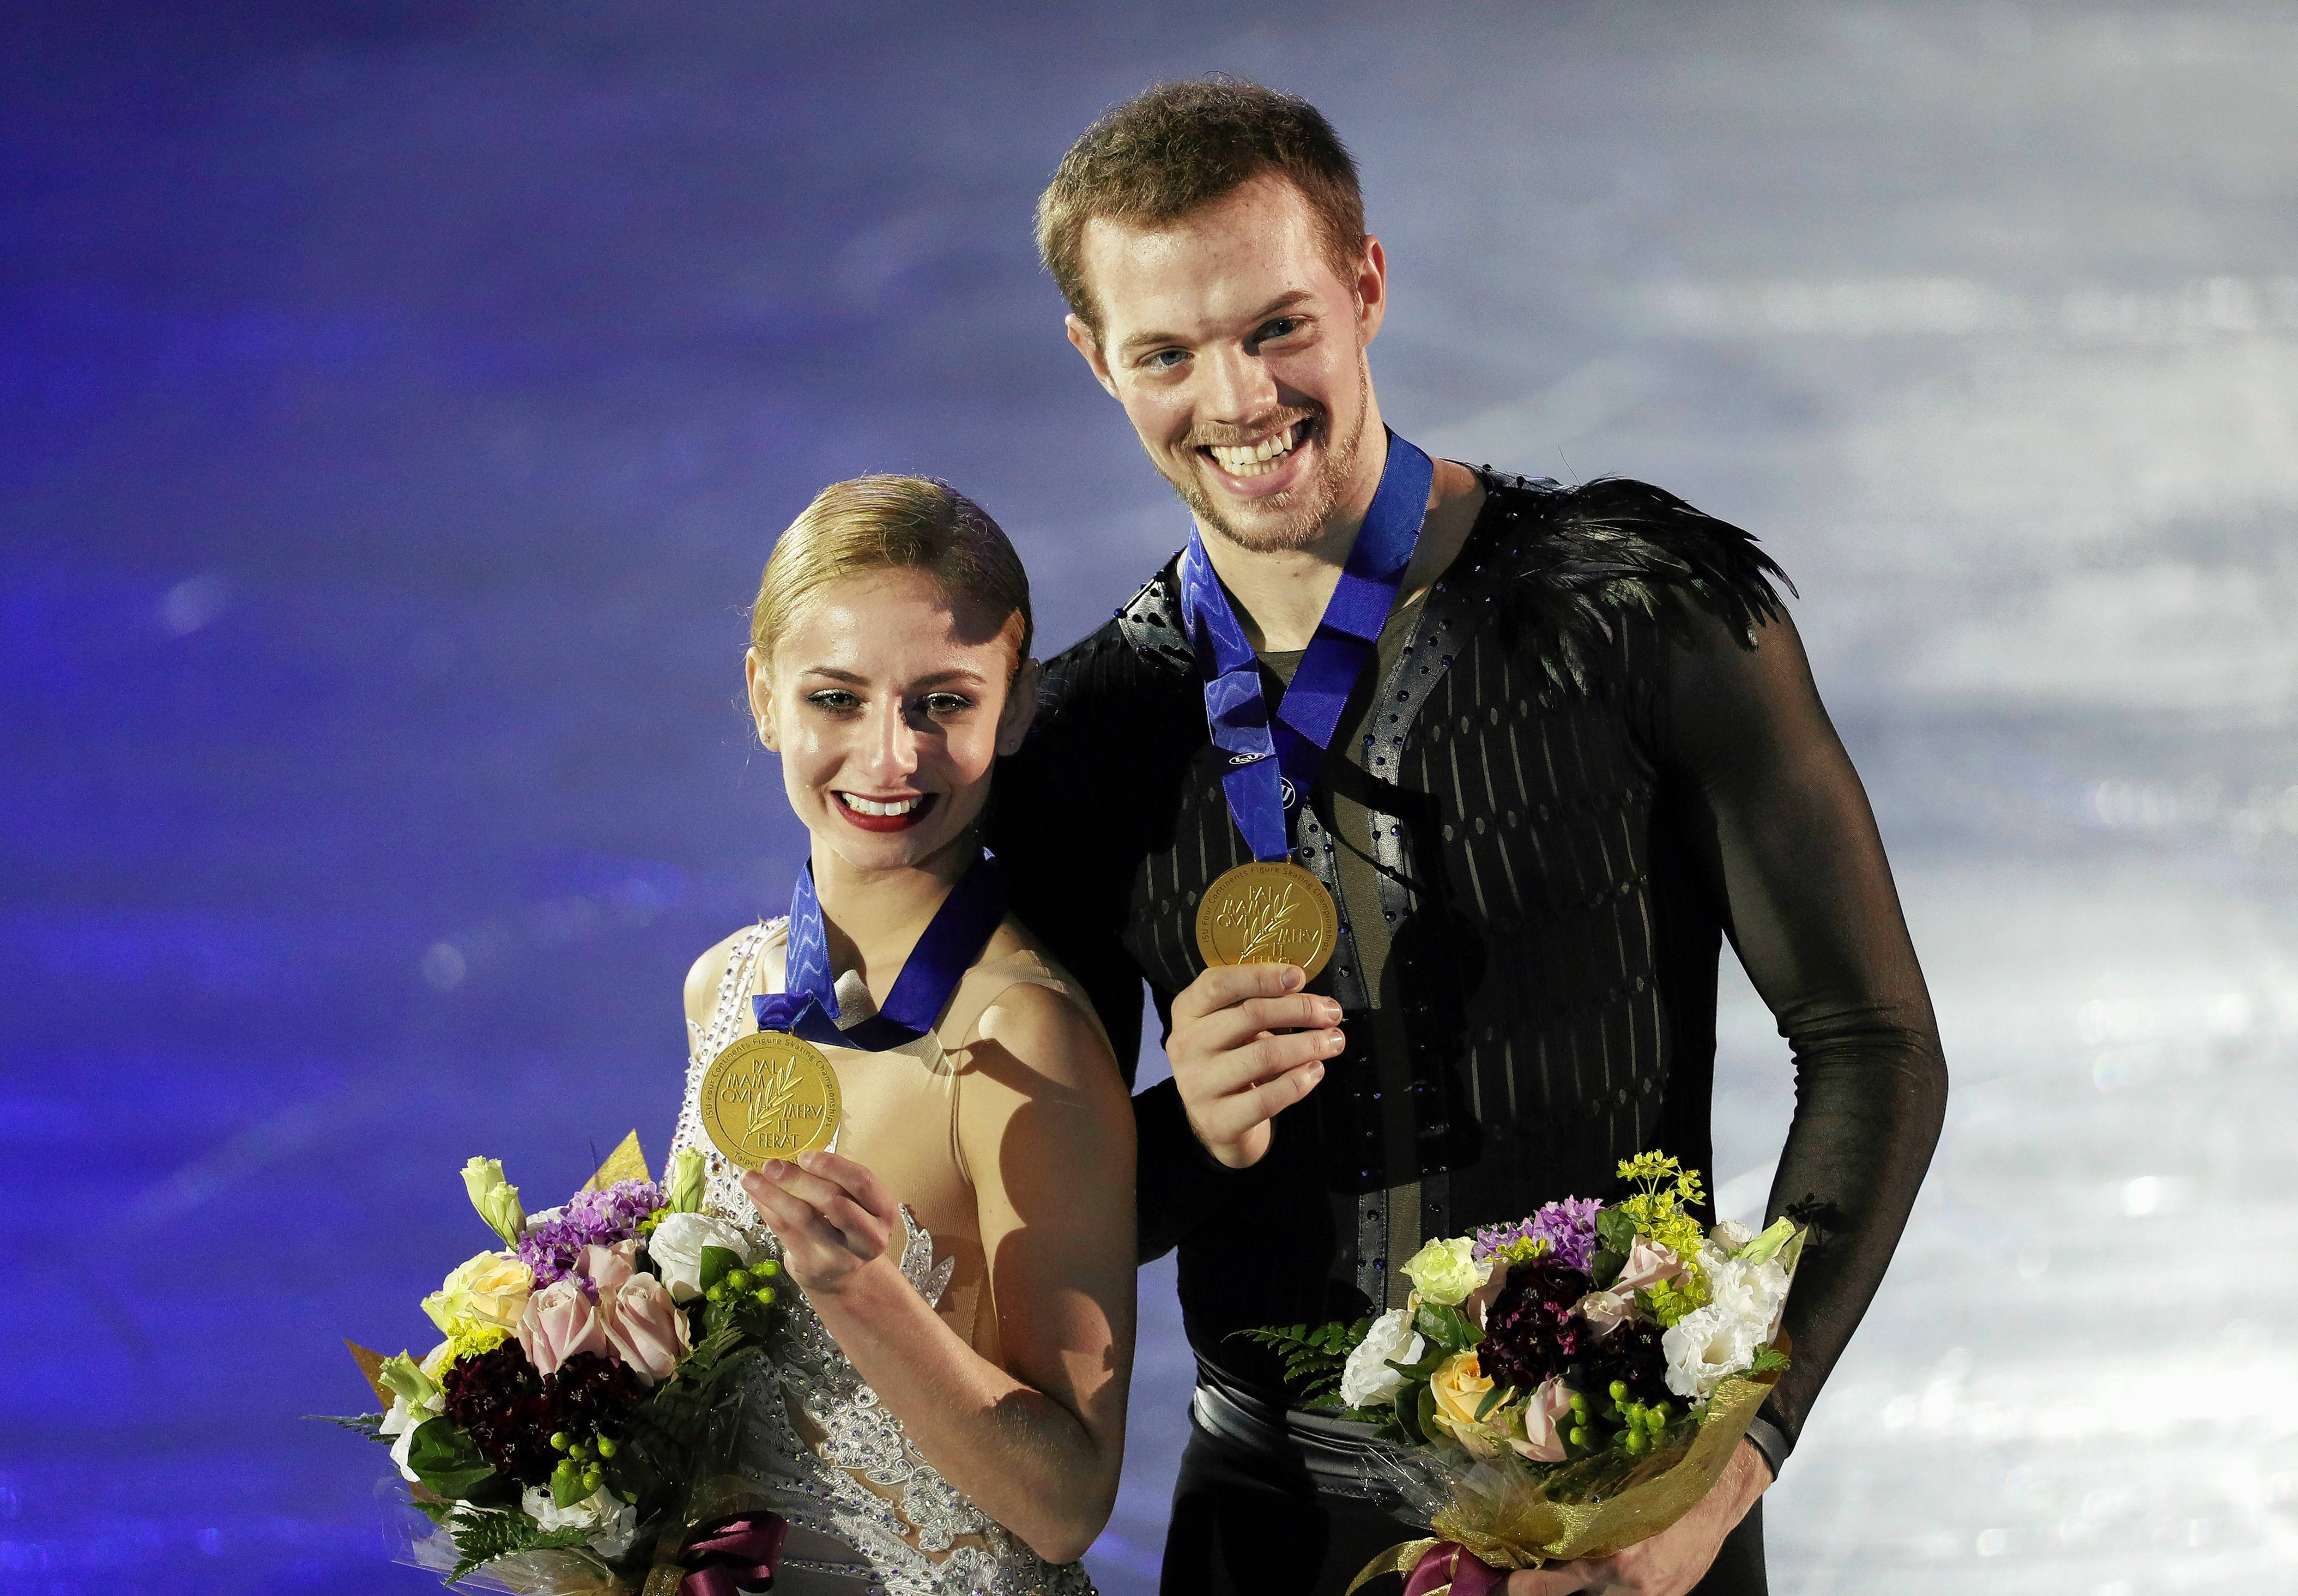 Tarah Kayne and Danny O'Shea scored a personal best in the free skate to win their first international title last month at the ISU Four Continents Figure Skating Championships.